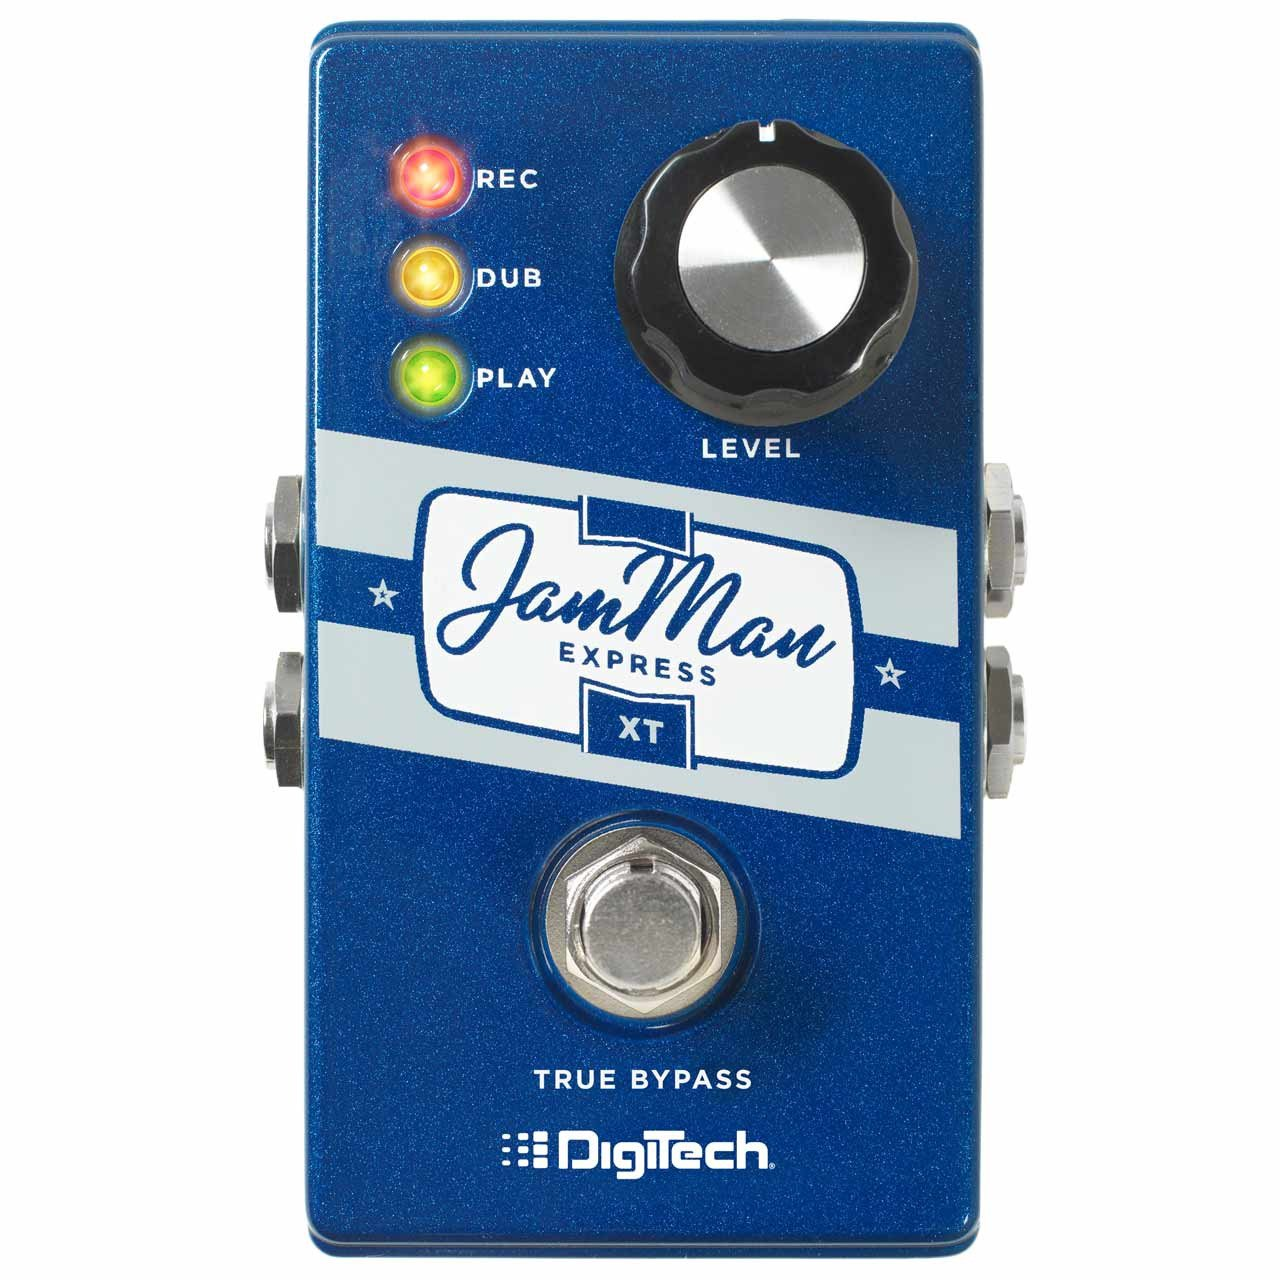 Loopers - Digitech JamMan Express XT Looper Pedal